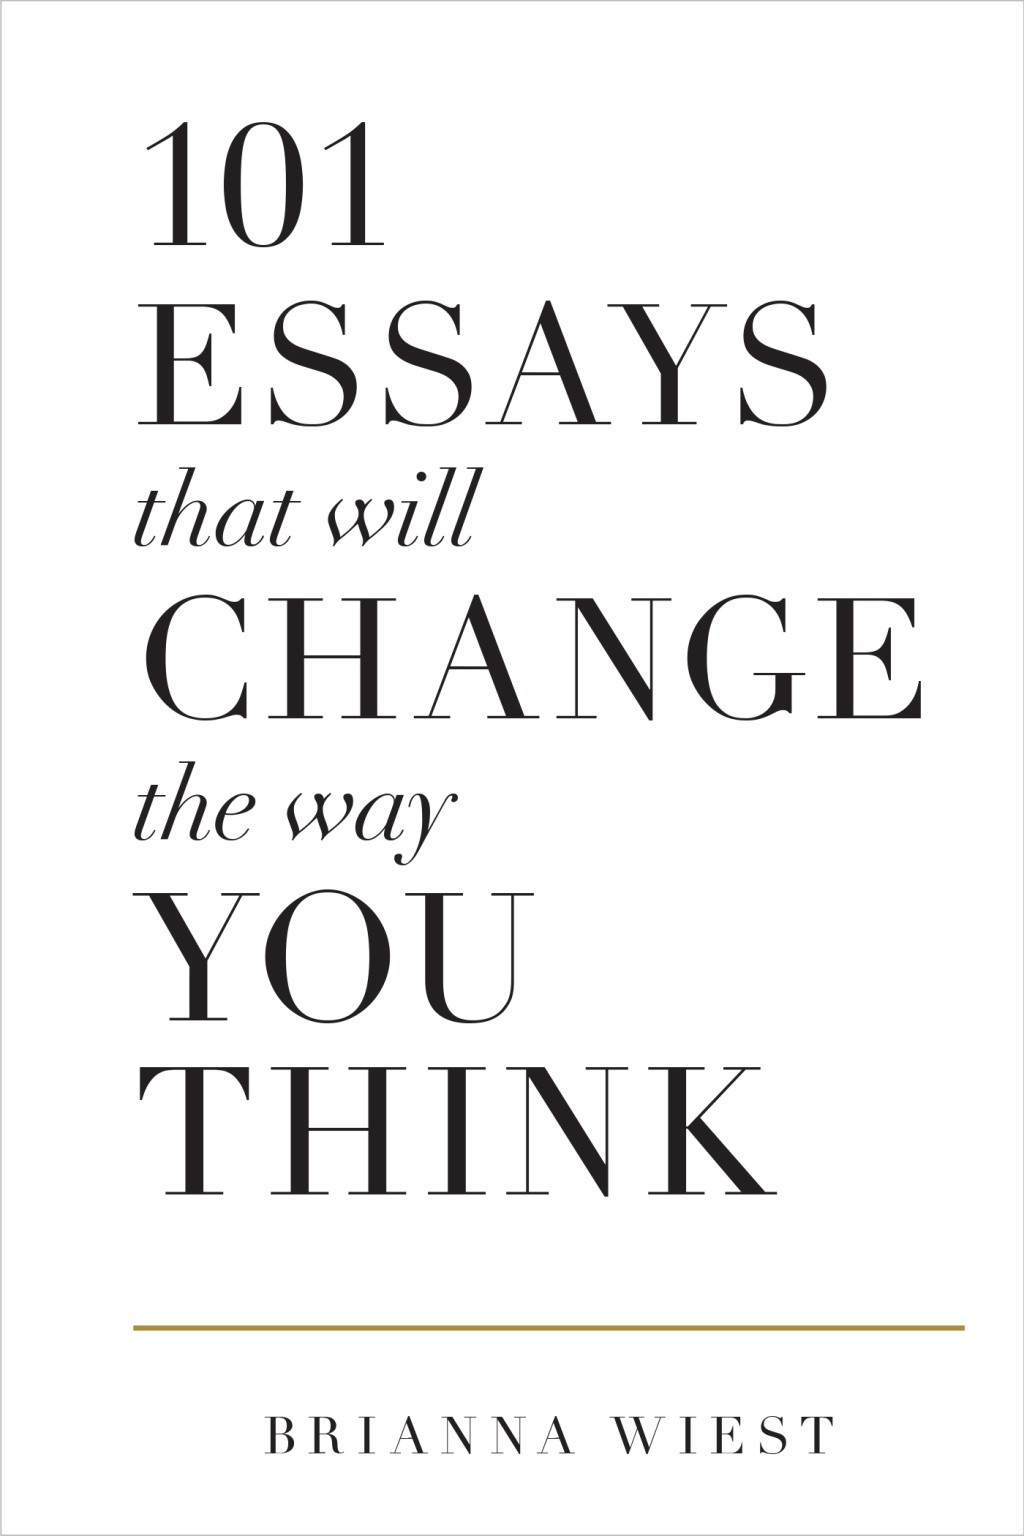 002 Essays That Will Change The Way You Think Essay Example Book Cover 1400x210015resize10241536quality95stripallcrop1 Unusual 101 Depository Barnes And Noble Review Large